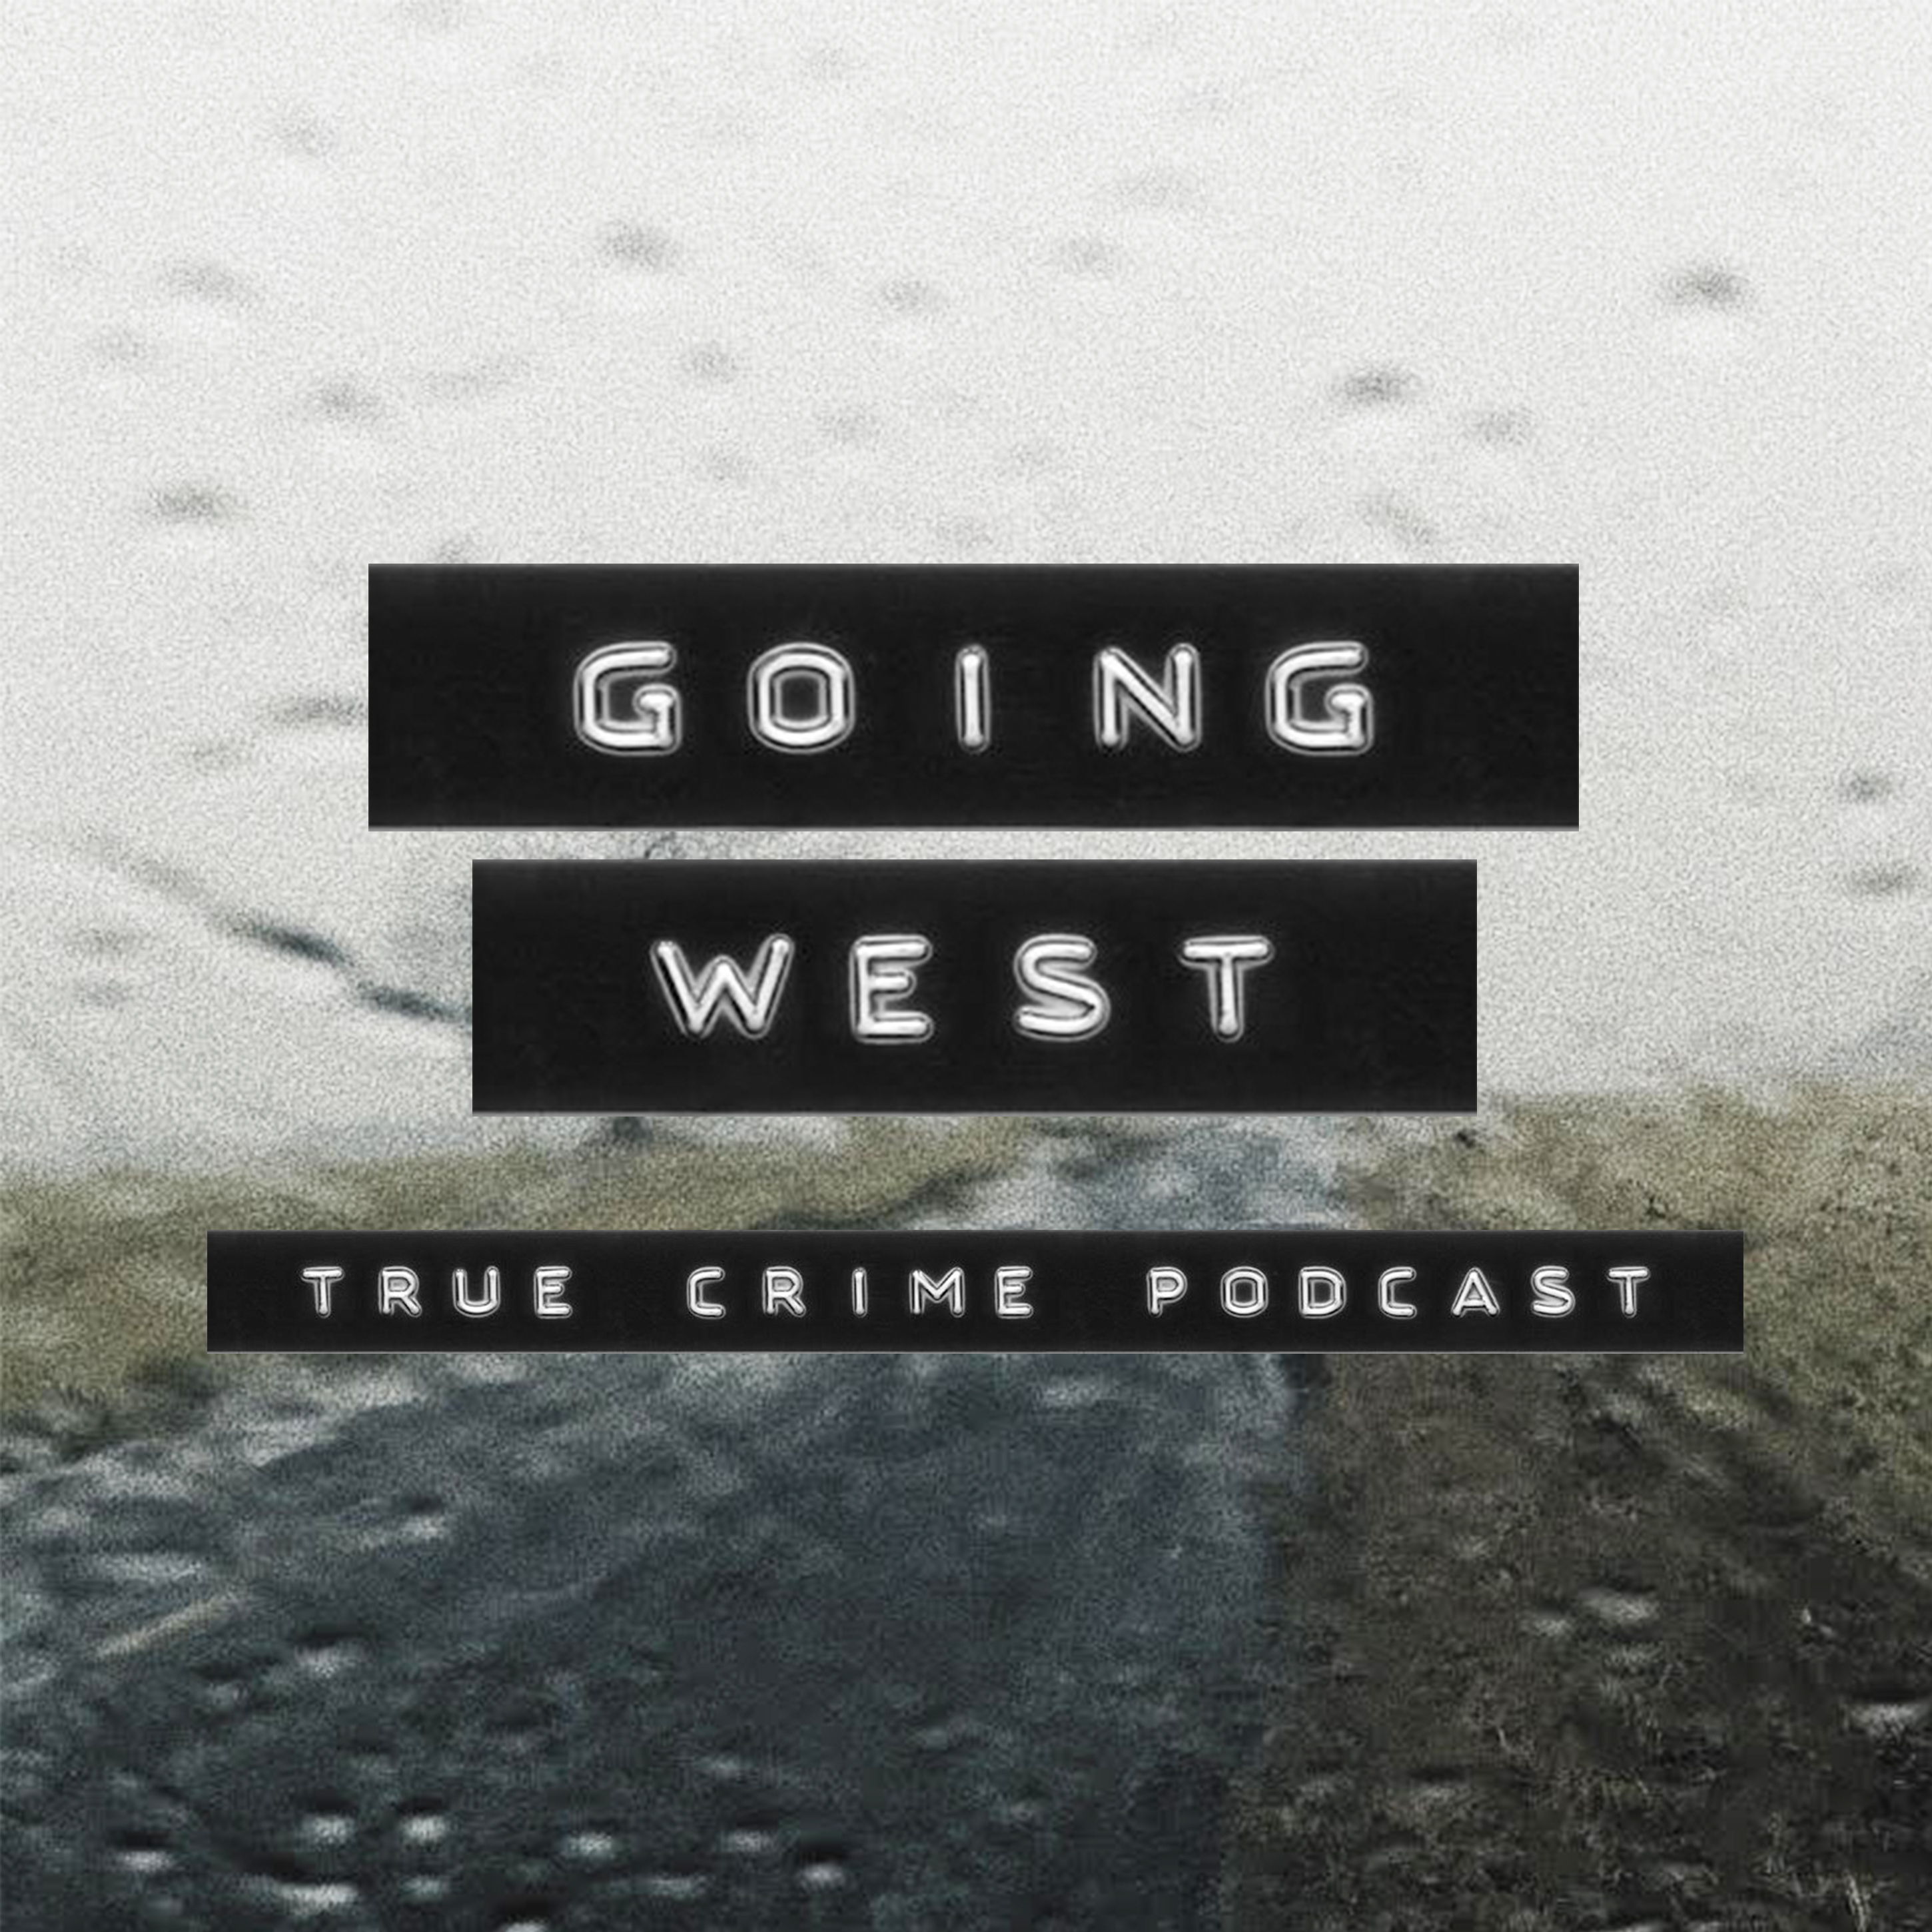 Going West True Crime Podcast Podtail